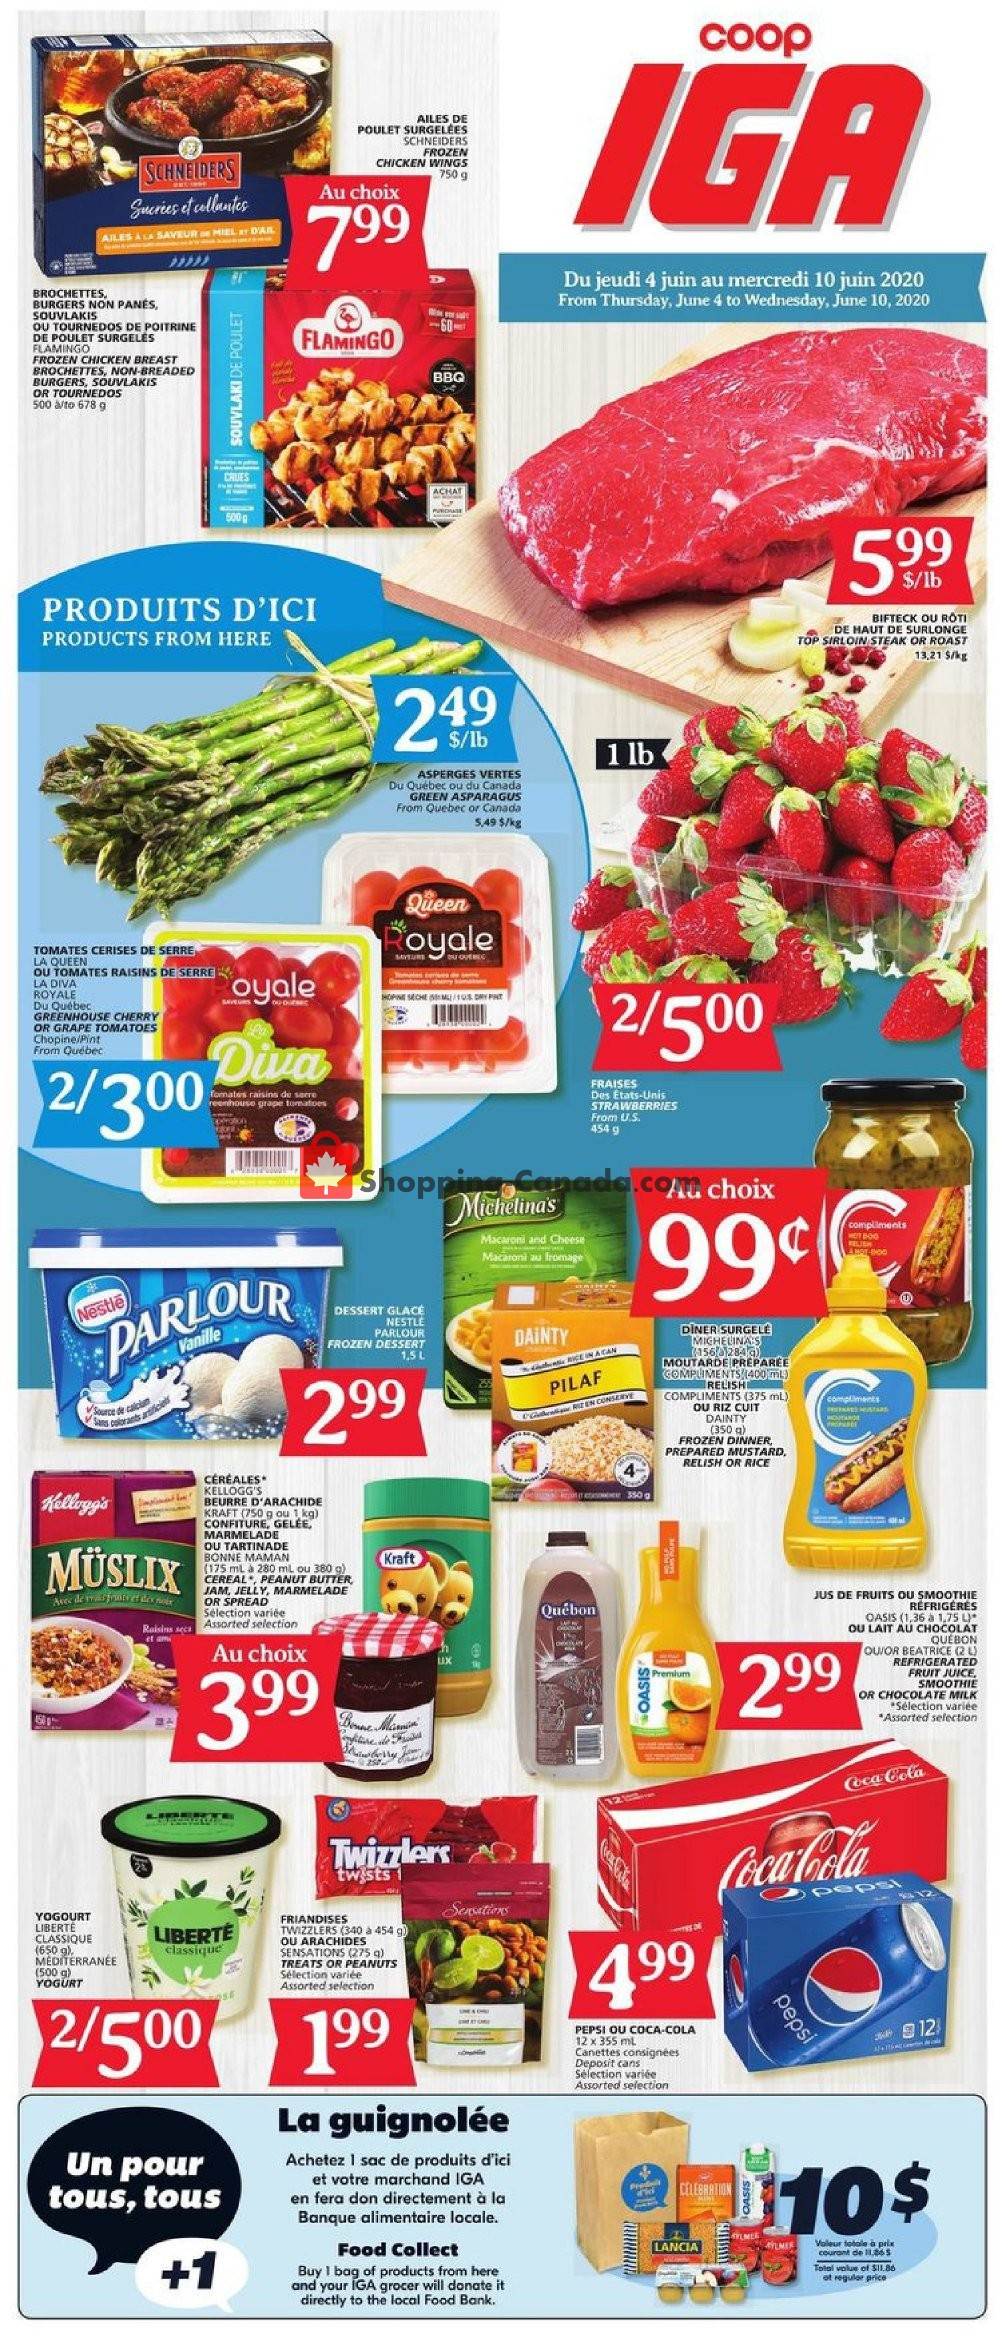 Flyer IGA Extra Canada - from Thursday June 4, 2020 to Wednesday June 10, 2020